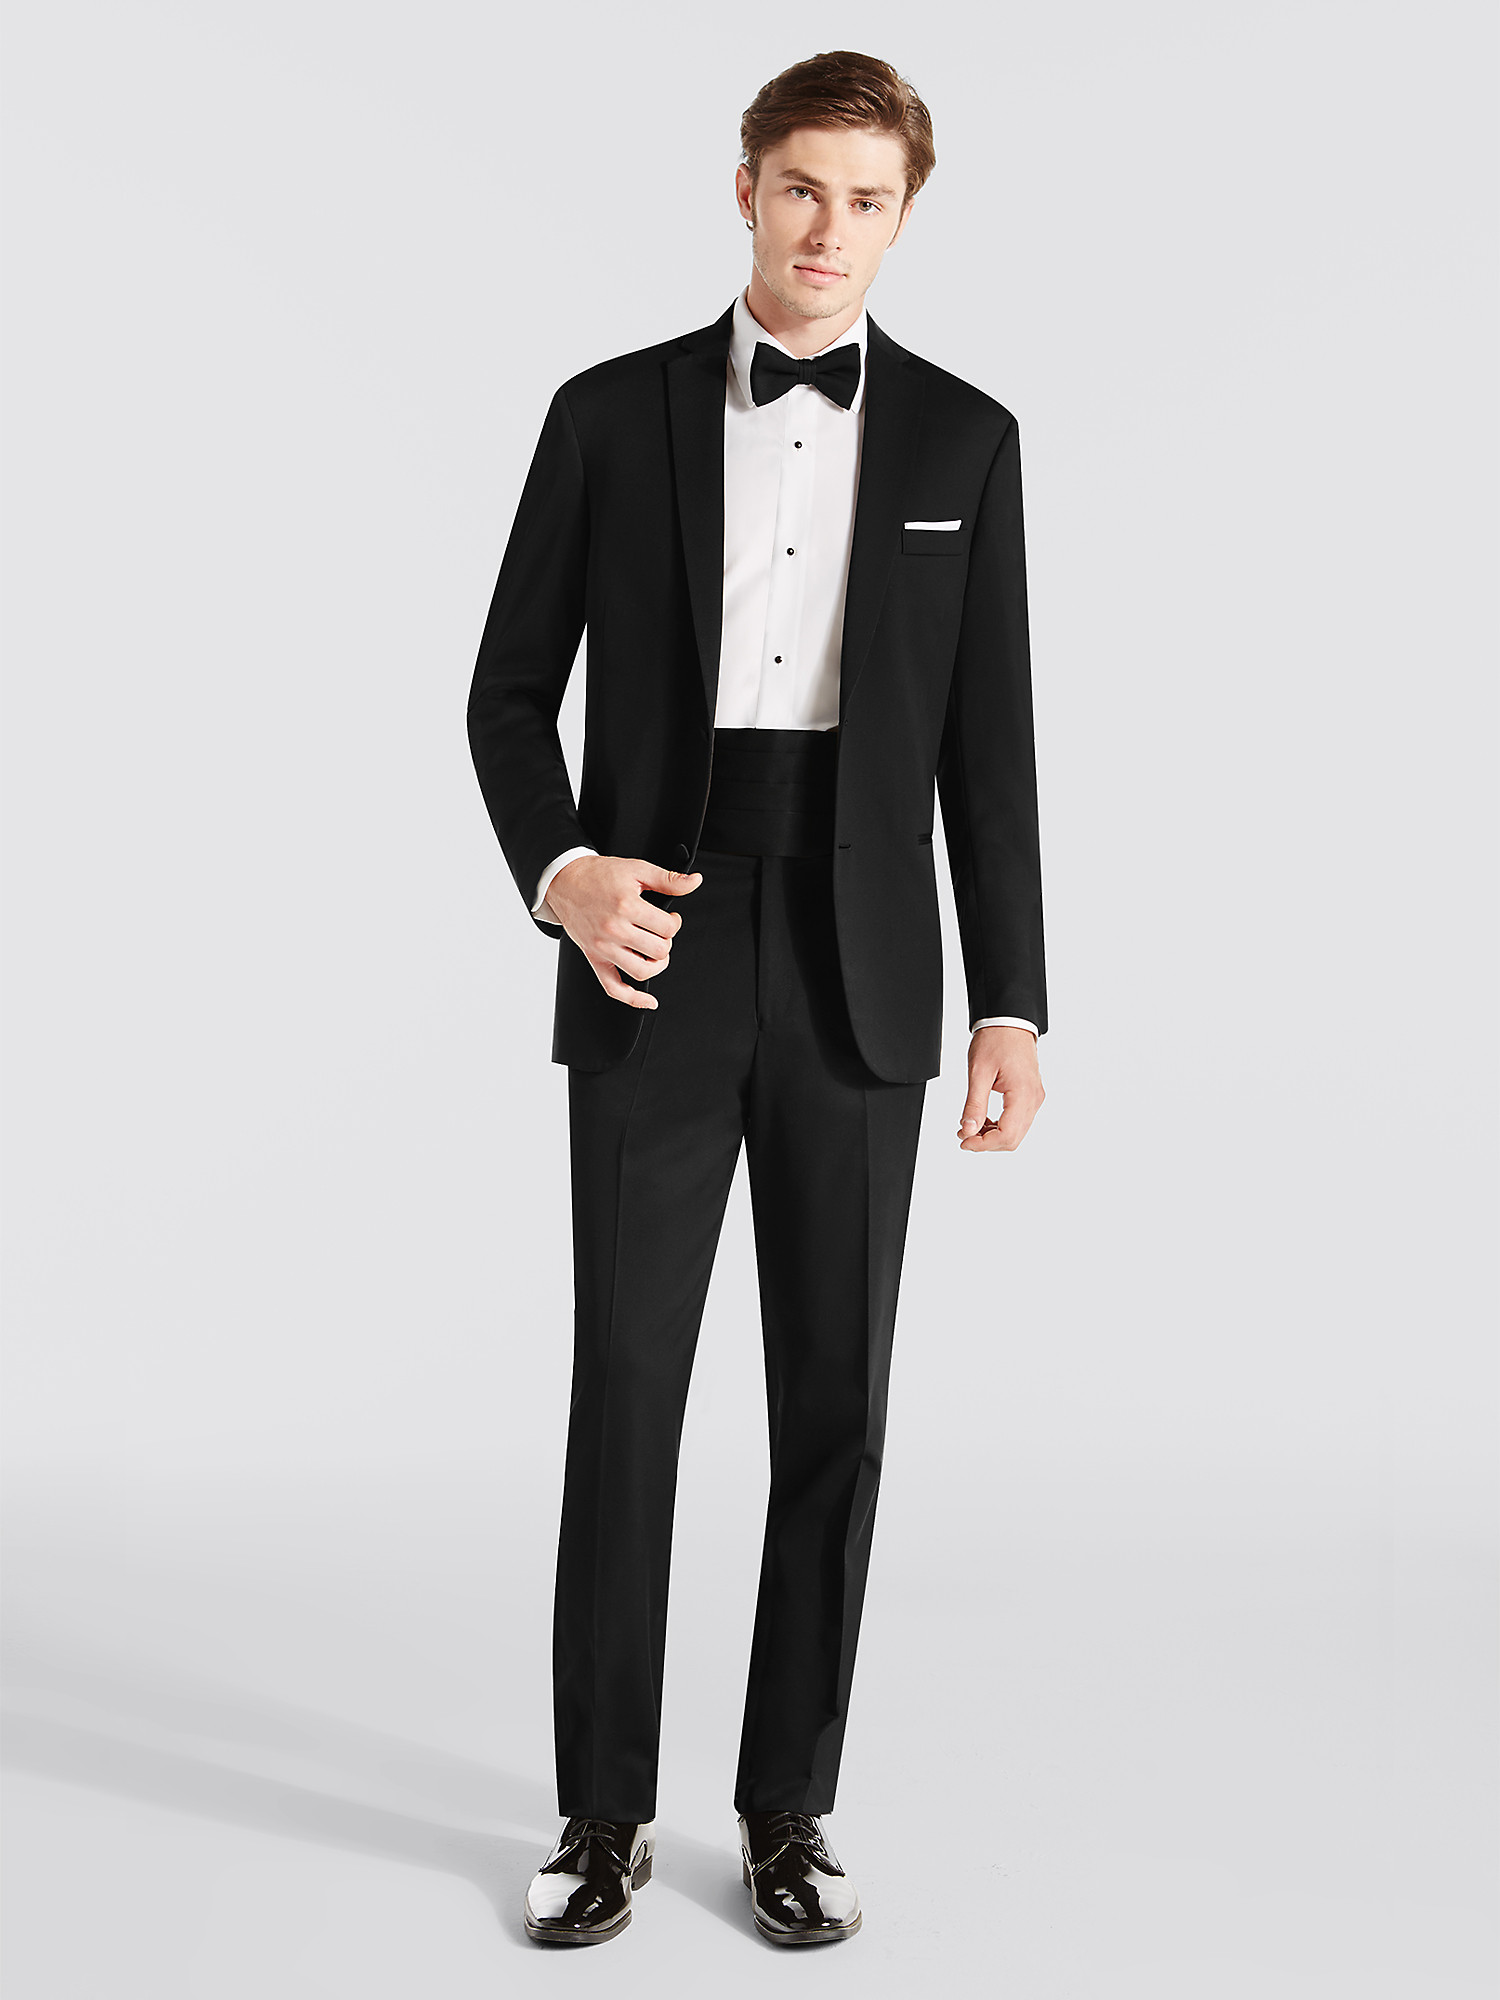 Steal the limelight with a black tuxedo